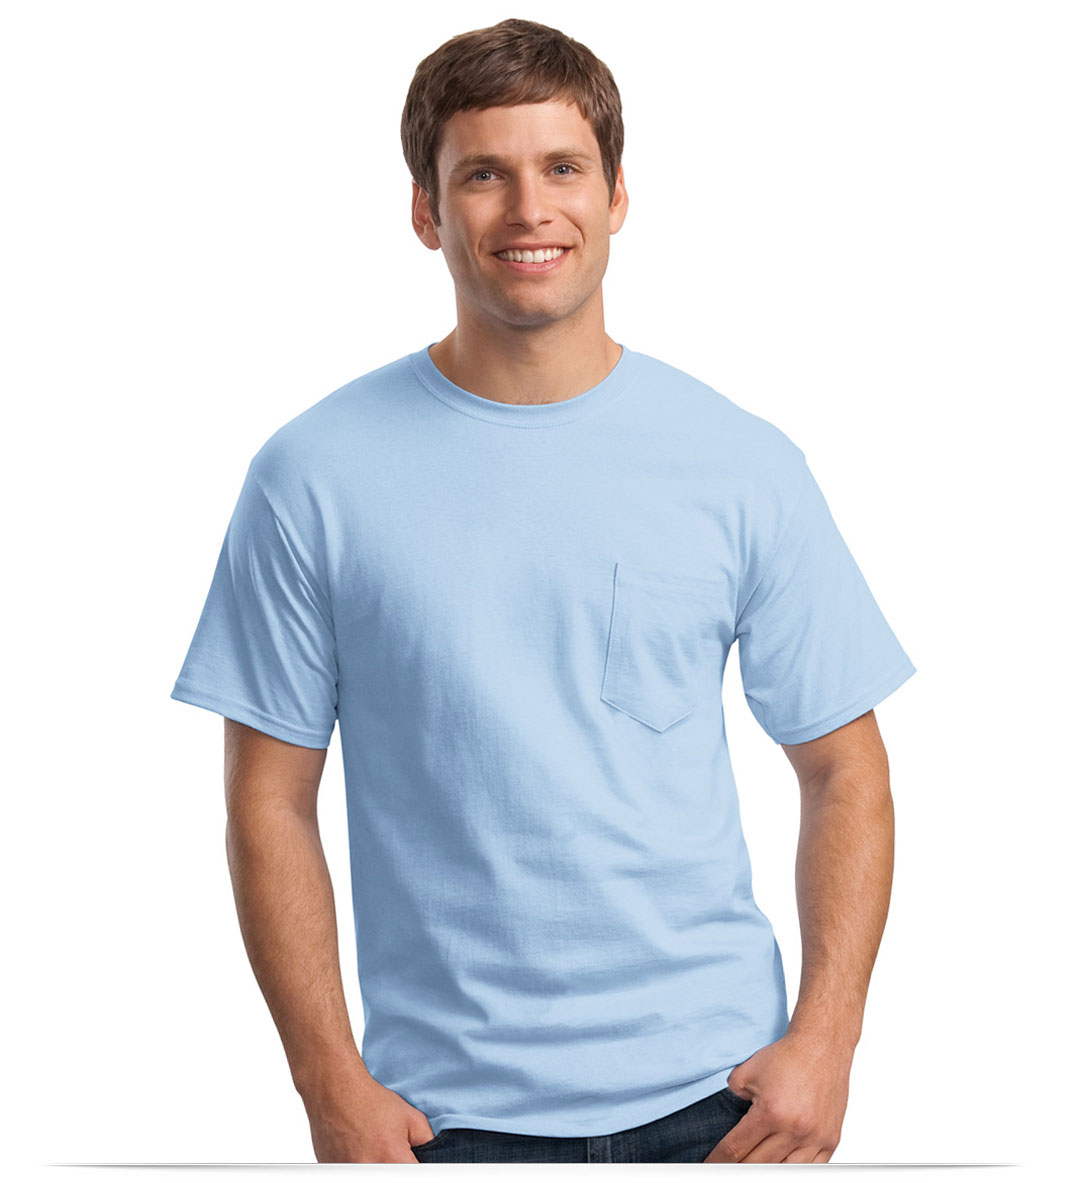 Personalized Hanes Cotton T-Shirt with Pocket